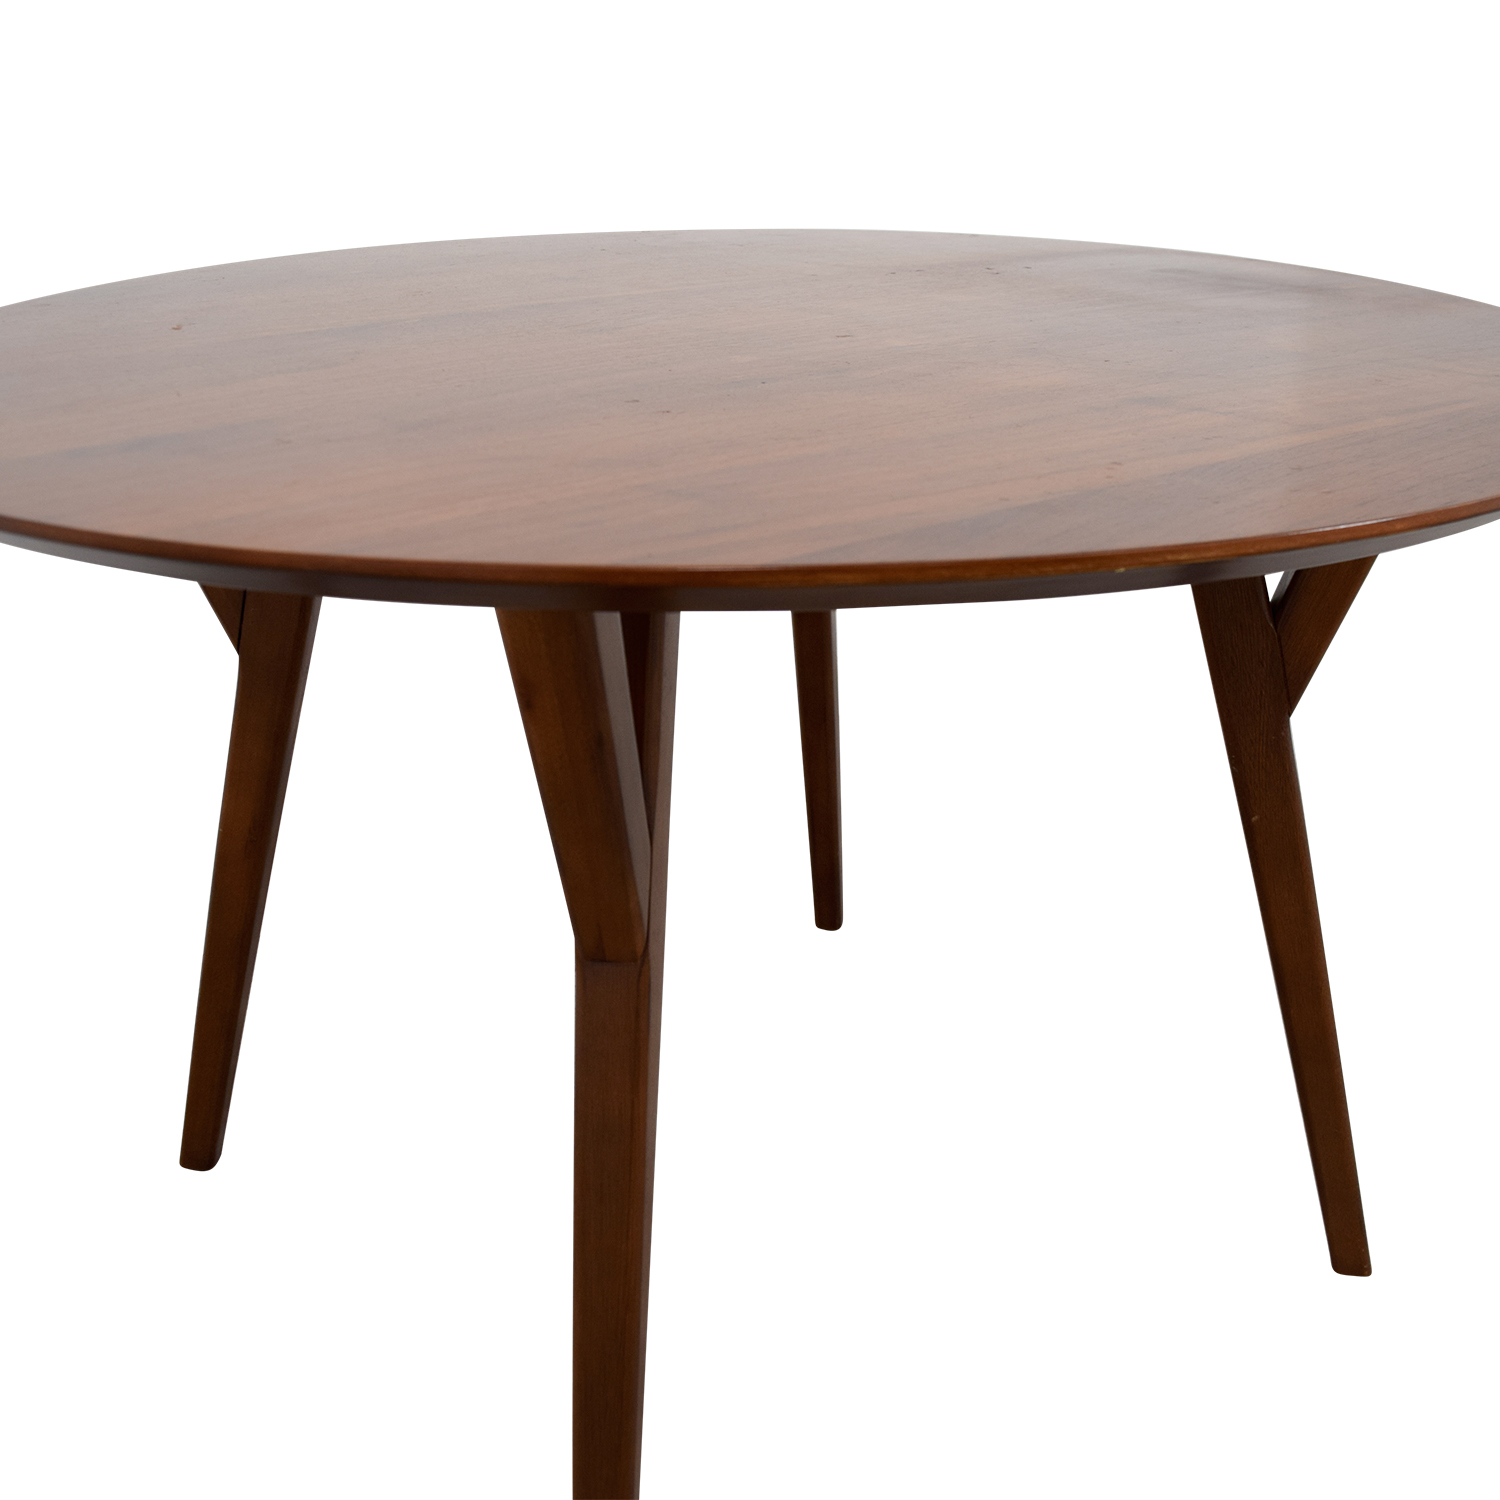 West Elm Round Wood Dining Table / Dinner Tables